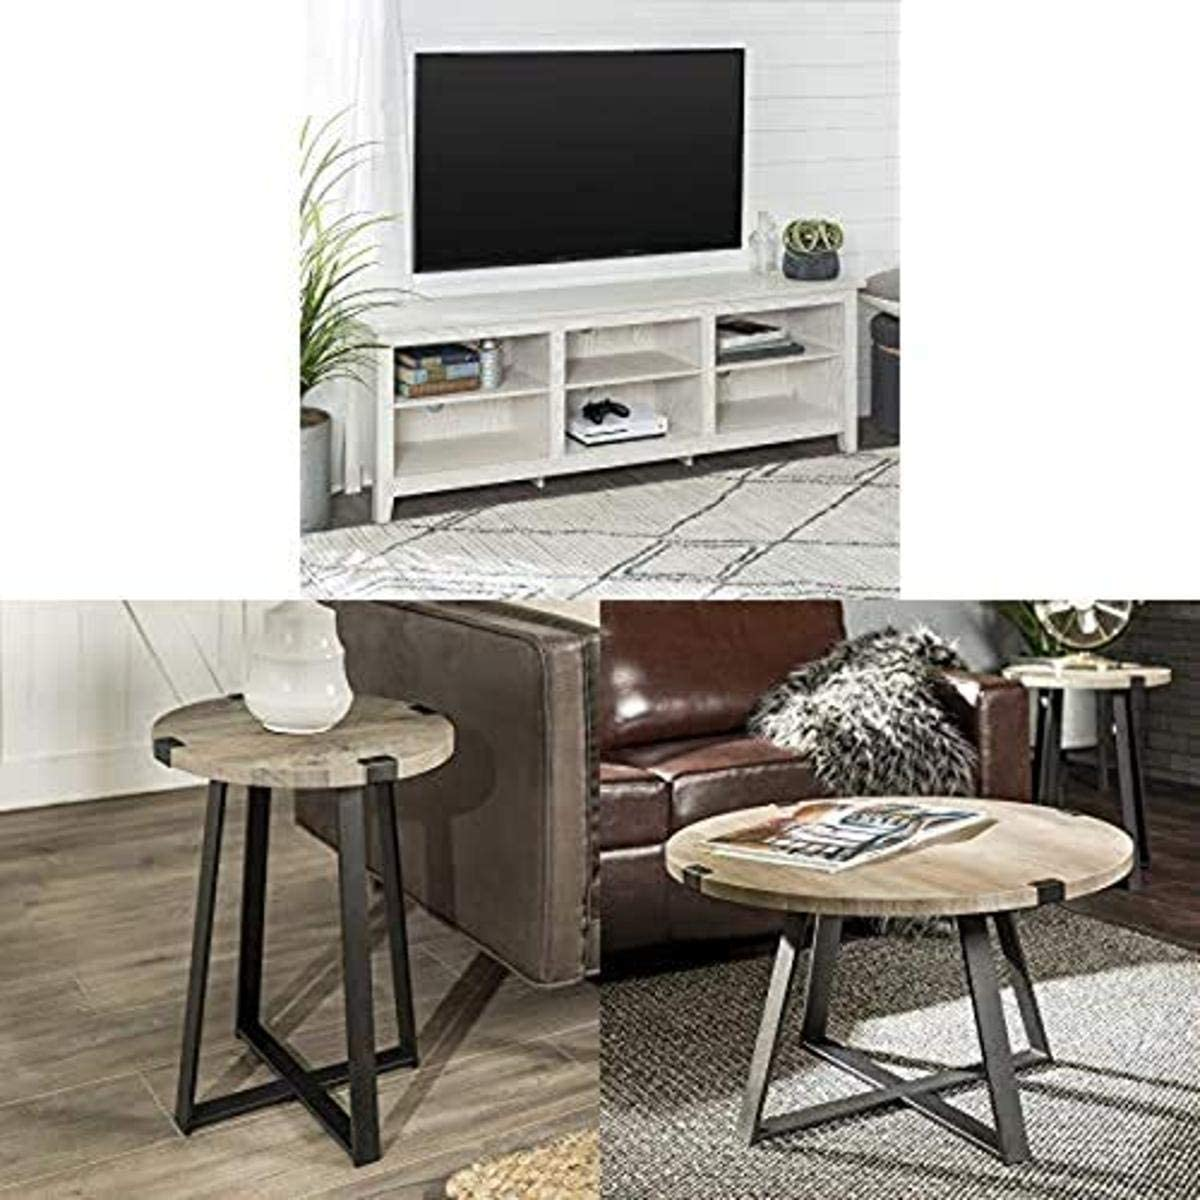 Walker Edison Furniture Company Minimal Farmhouse Wood Universal Stand for TV with WE Furniture Round Metal Side End Accent Table, 18 Inch and Round Metal Coffee Accent Table, 30 Inch, Grey, Black